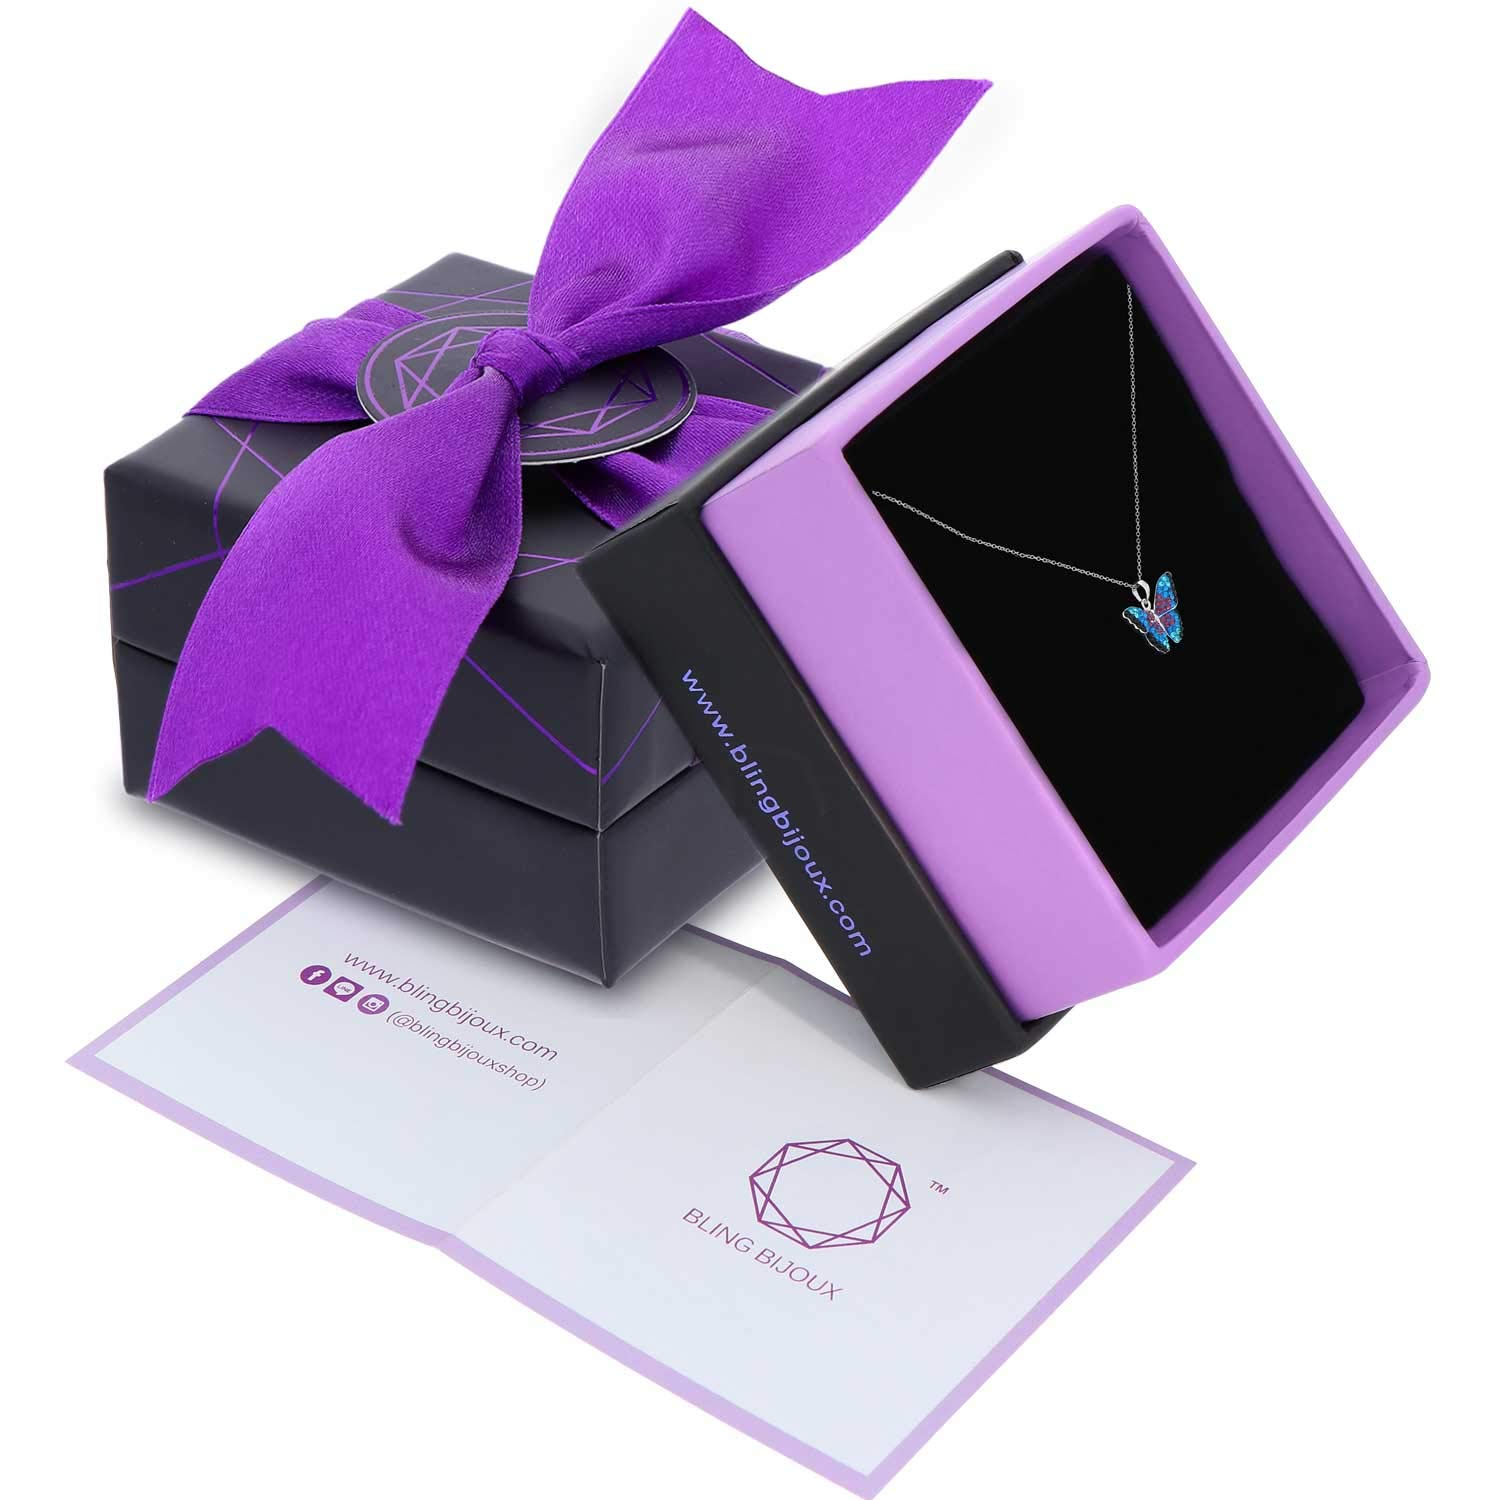 BLING BIJOUX Jewelry Blue Rainbow Crystal Monarch Butterfly Pendant Never Rust 925 Sterling Silver Natural and Hypoallergenic Chain with Free Breathtaking Gift Box for a Special Moment of Love by BLING BIJOUX Jewelry (Image #2)